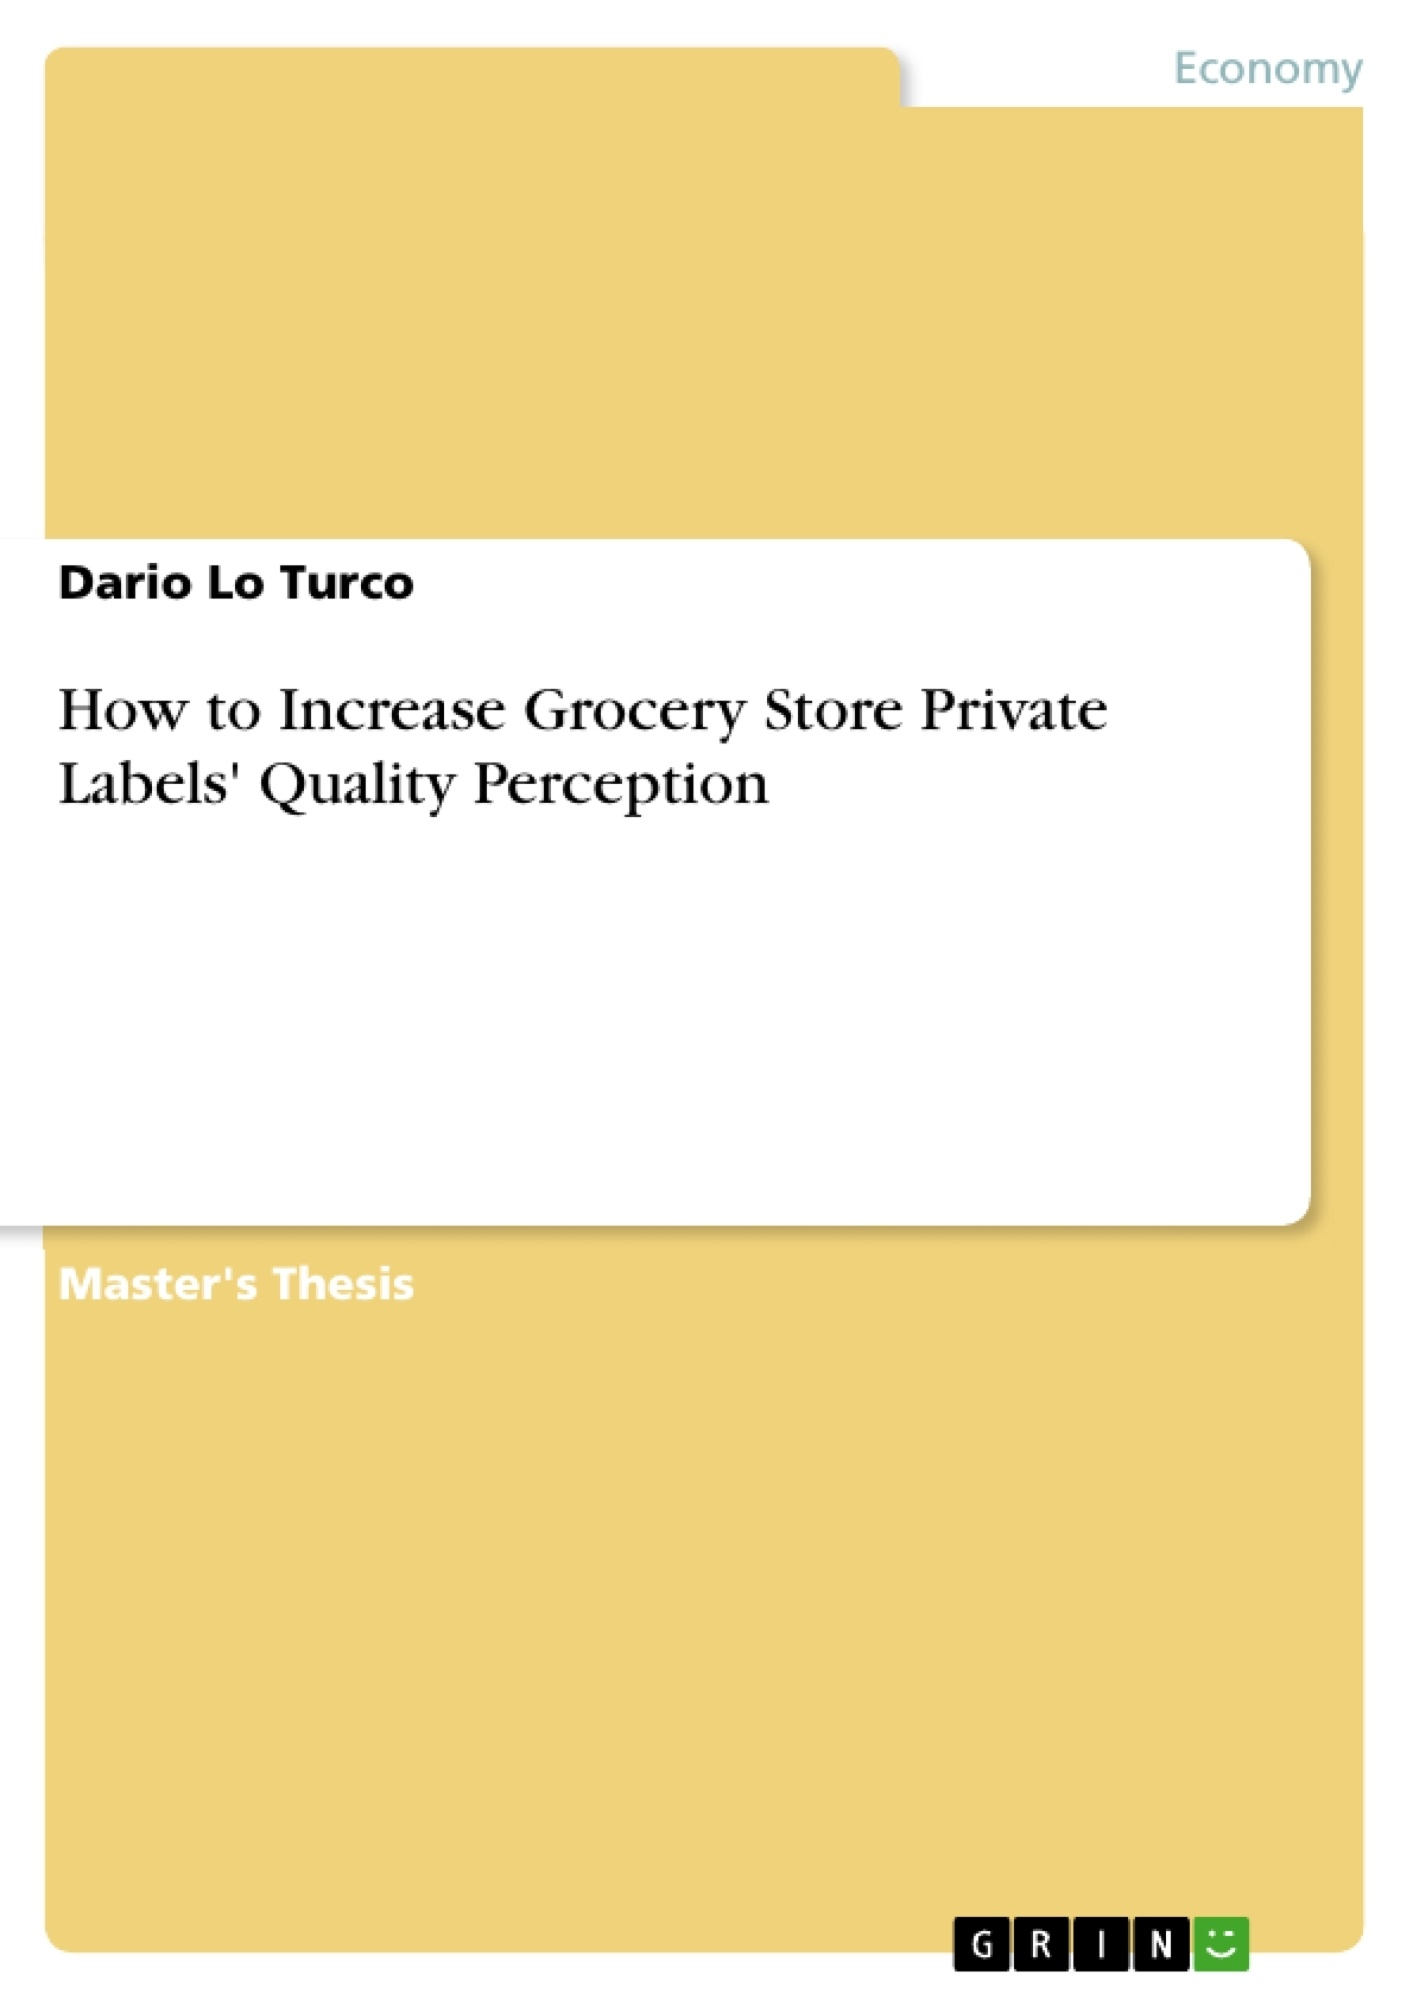 Title: How to Increase Grocery Store Private Labels' Quality Perception